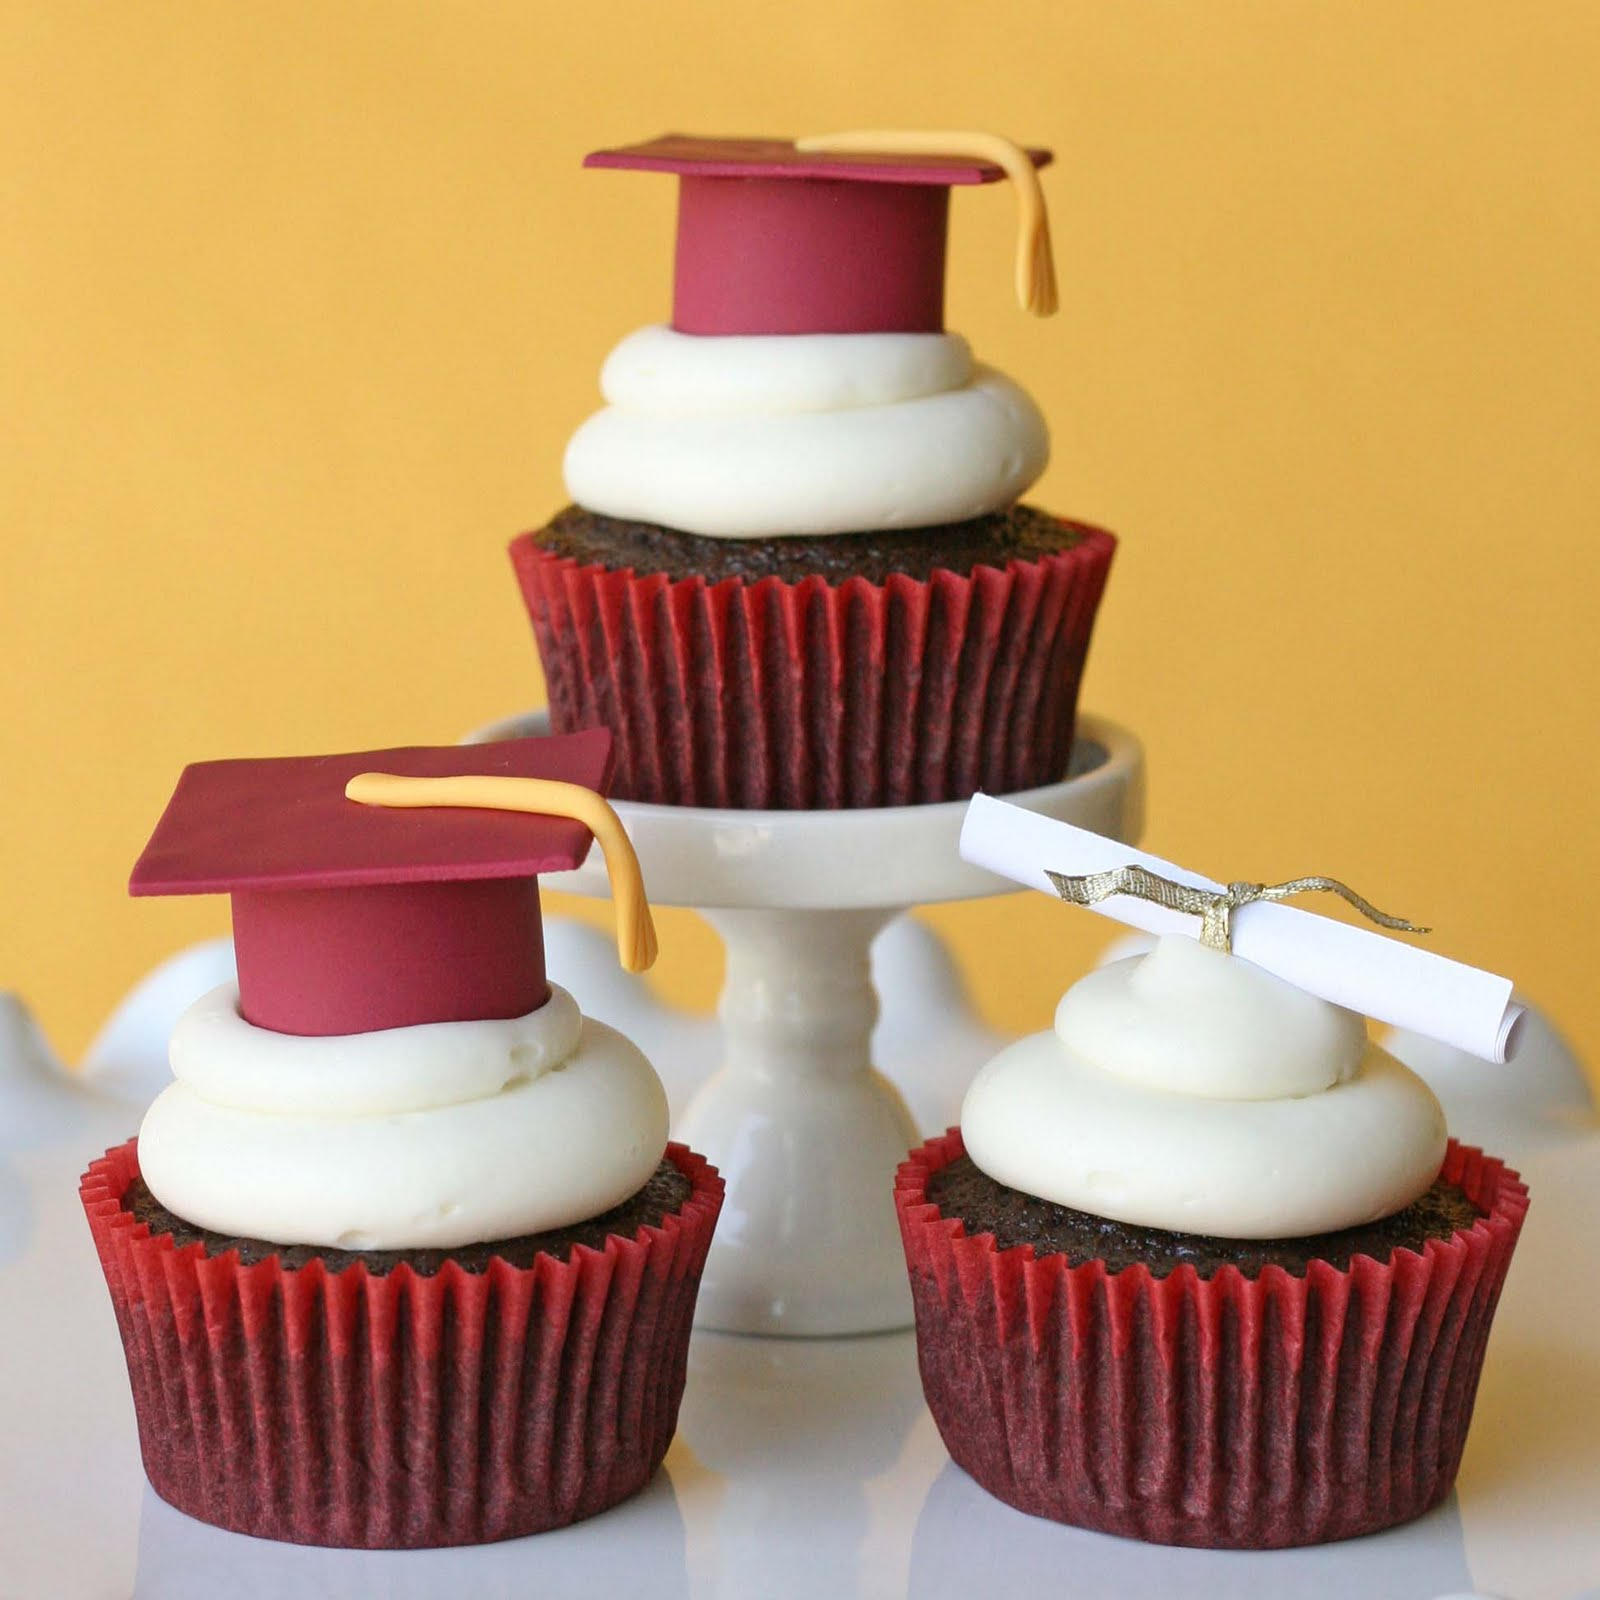 Cupcake Cake Ideas: Graduation Cupcakes {and How To Make Fondant Graduation